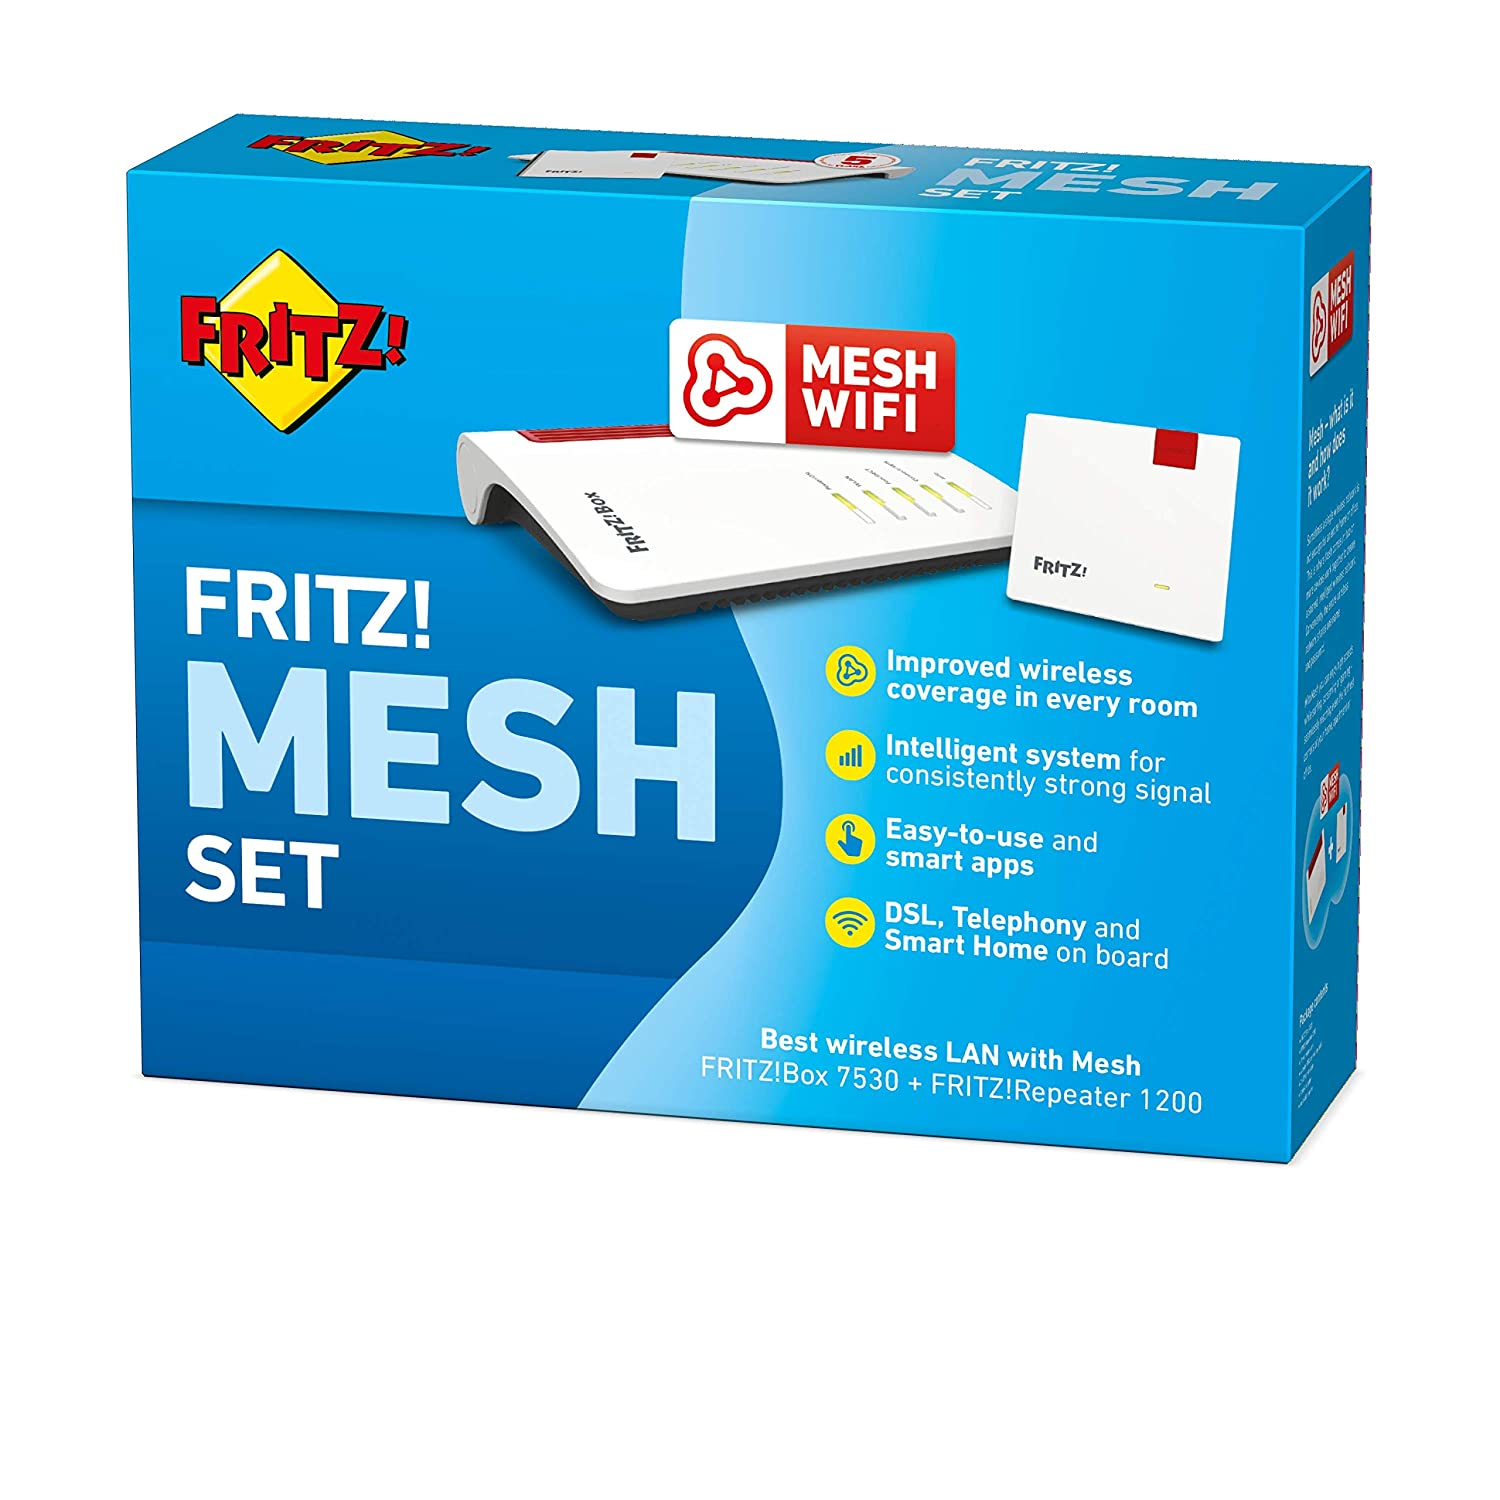 Fritz!Box 7530 and Fritz!Repeater 1200, Dual-WLAN AC up to 866 Mbps 5 GHz , up to 300 Mbps through VDSL Supervectoring 35b 2.4 GHz AVM Fritz!Mesh Set International and N up to 400 Mbps